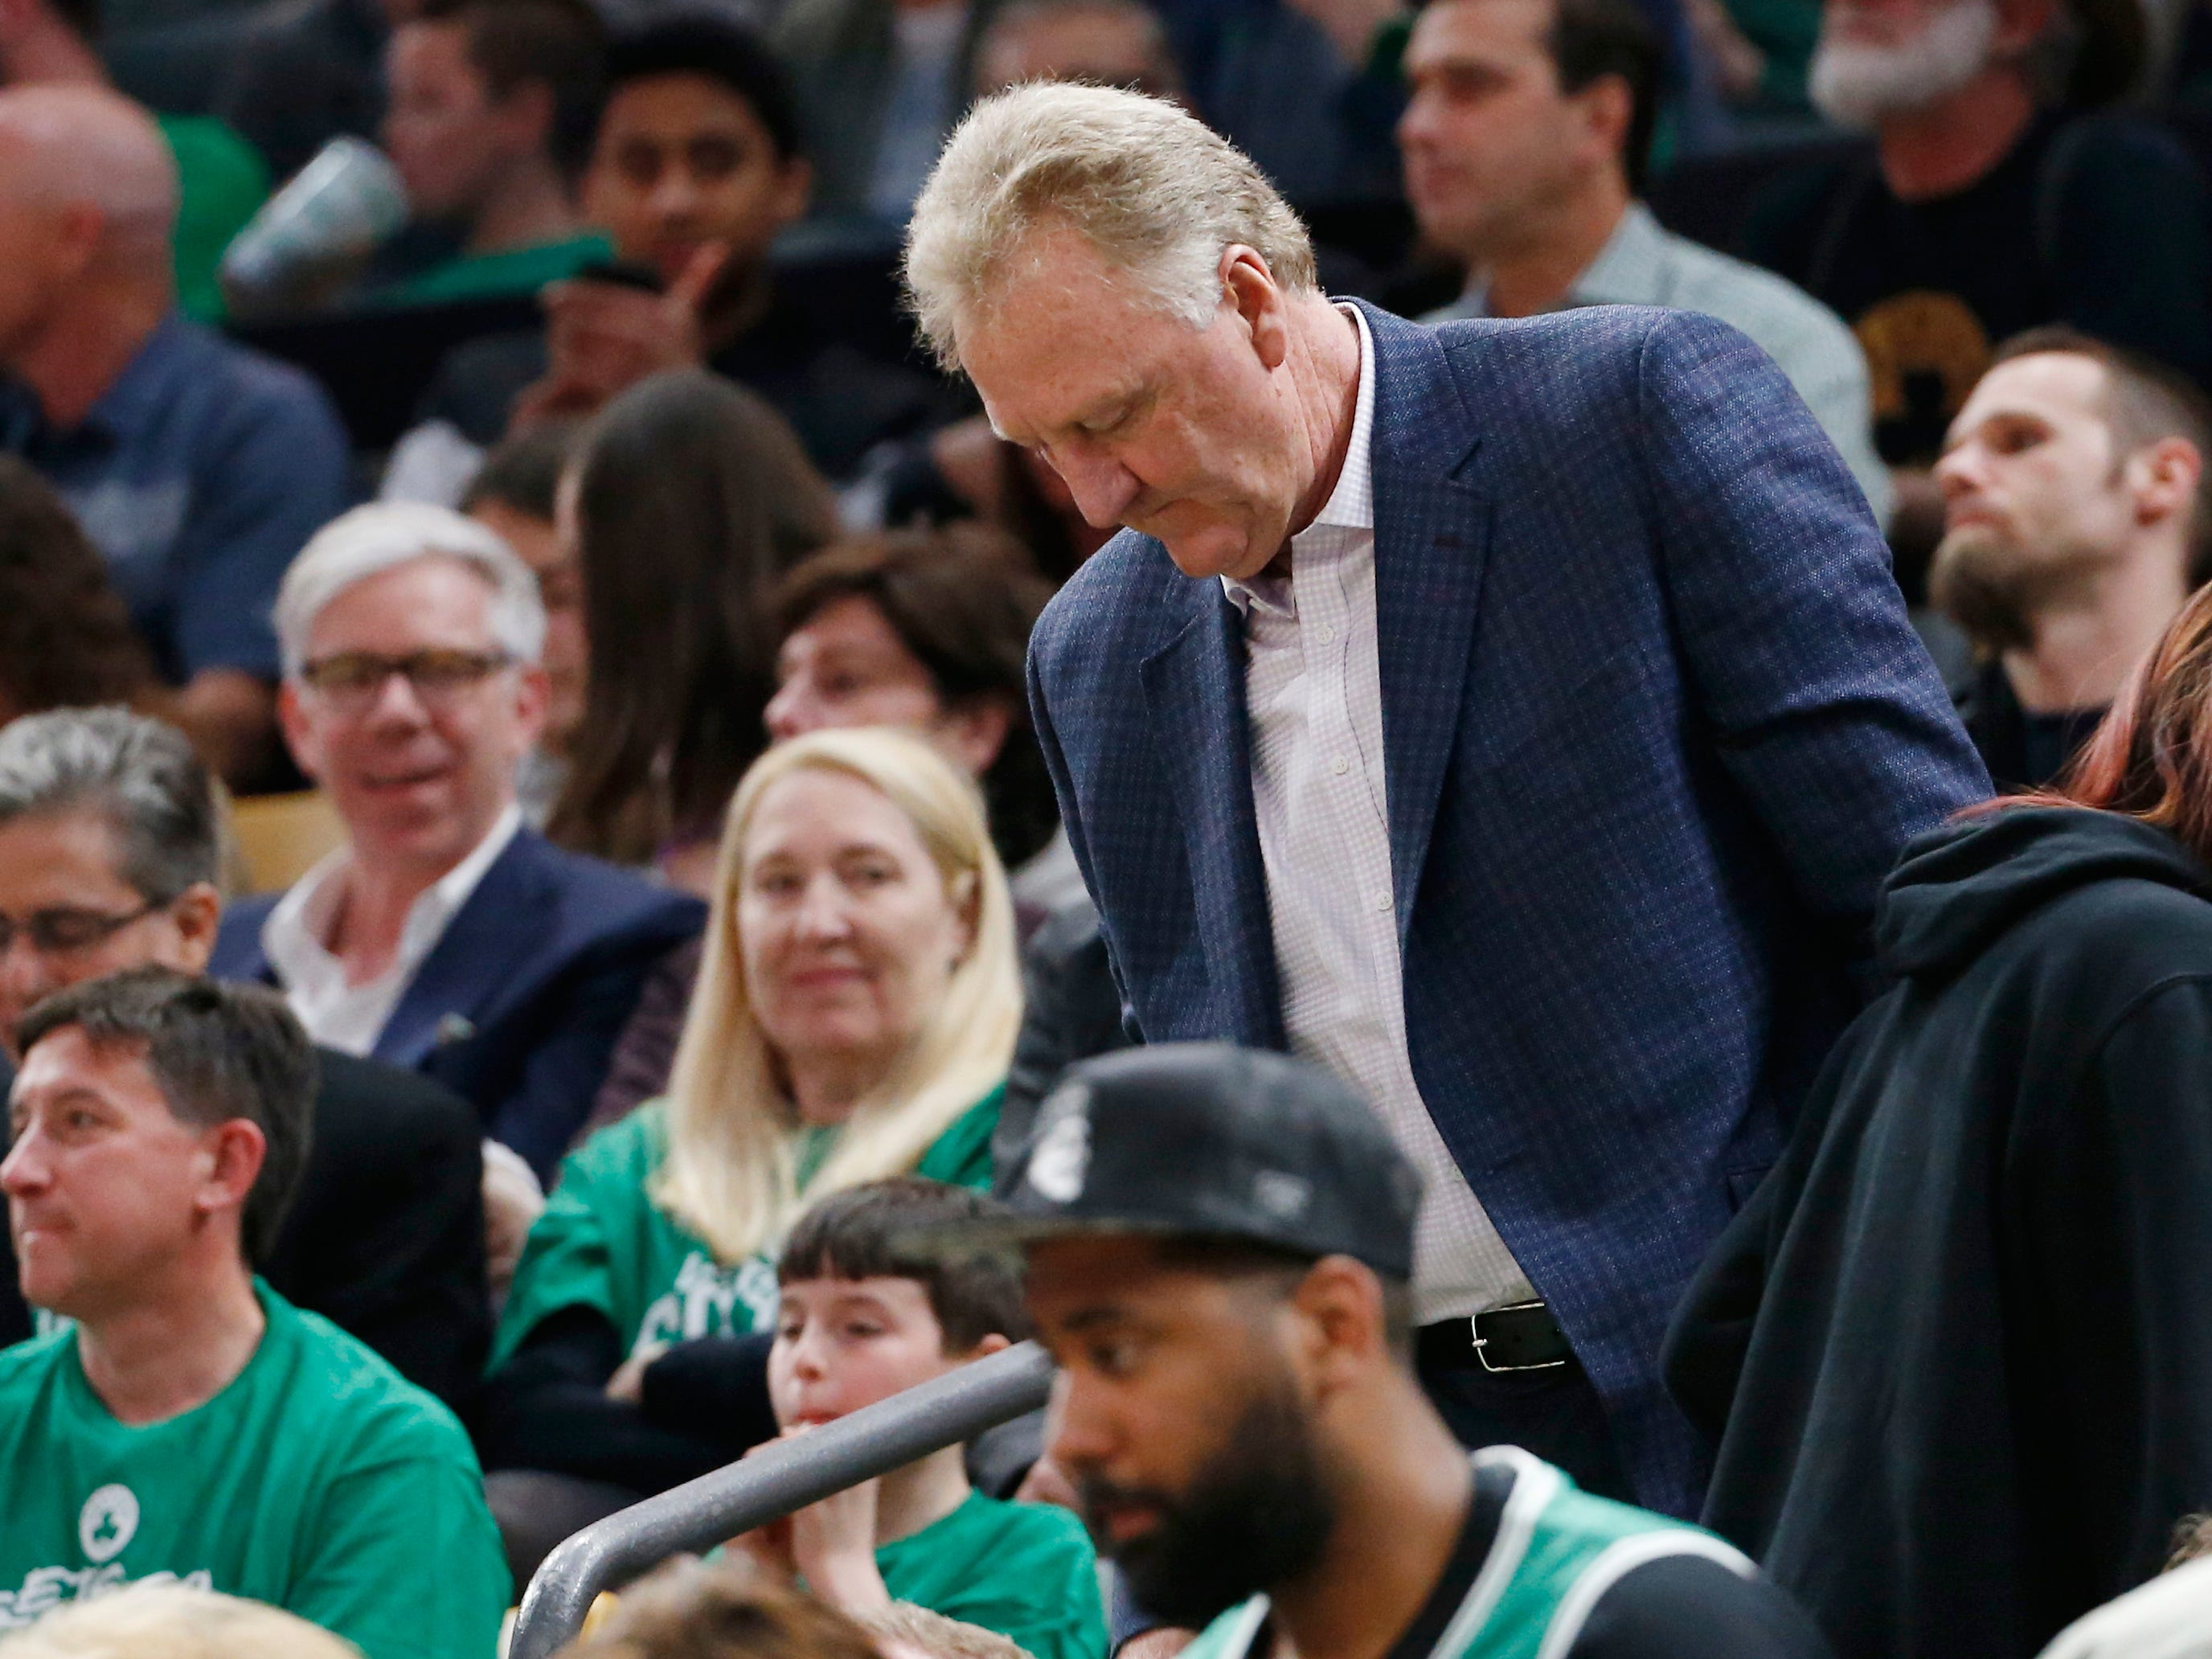 April 17: Celtics legend Larry Bird in the stands during Game 2 between the Celtics and Pacers in Boston.